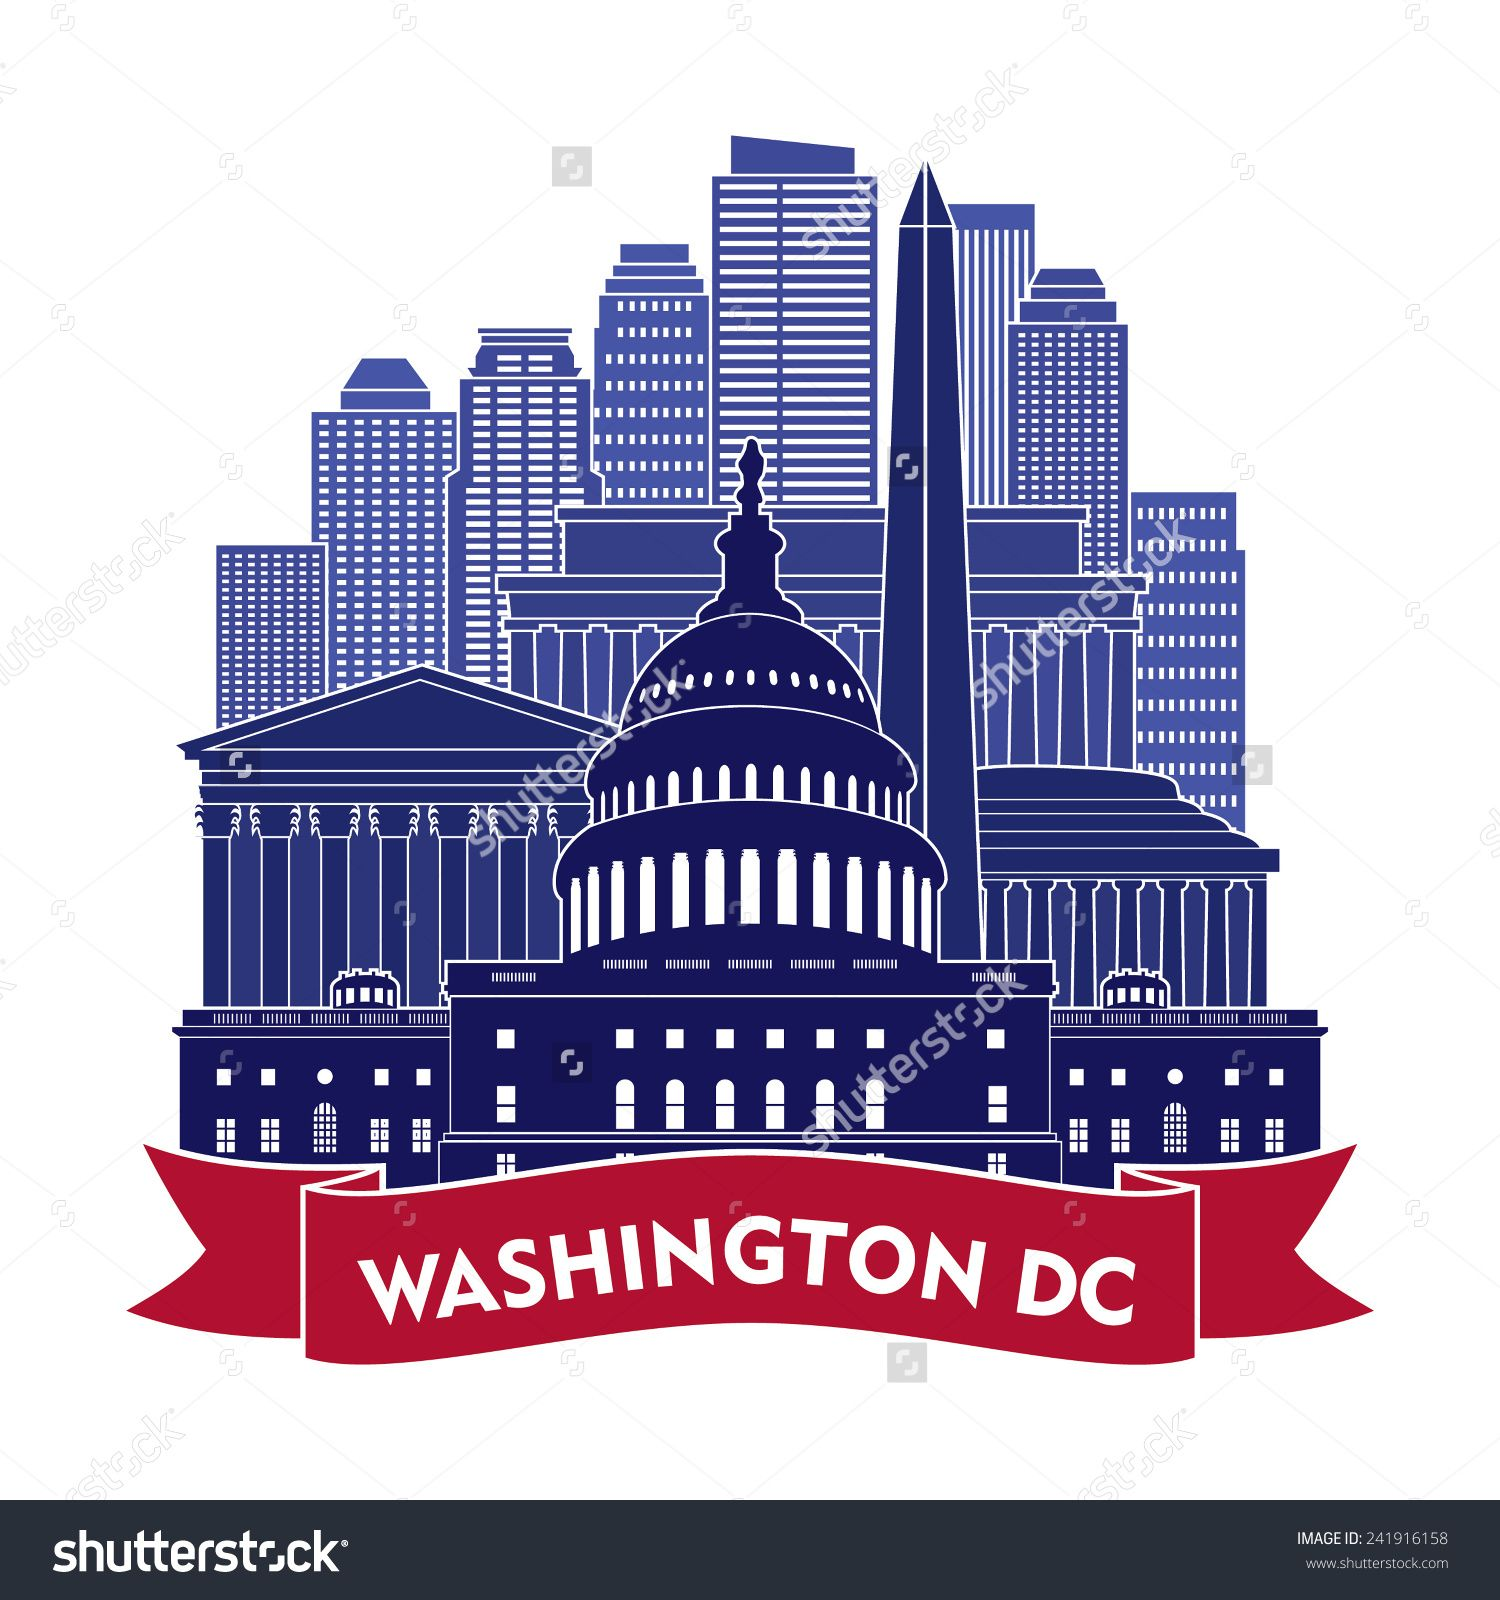 Art Places In Washington Dc: Washington Dc Clipart Free - Google Search